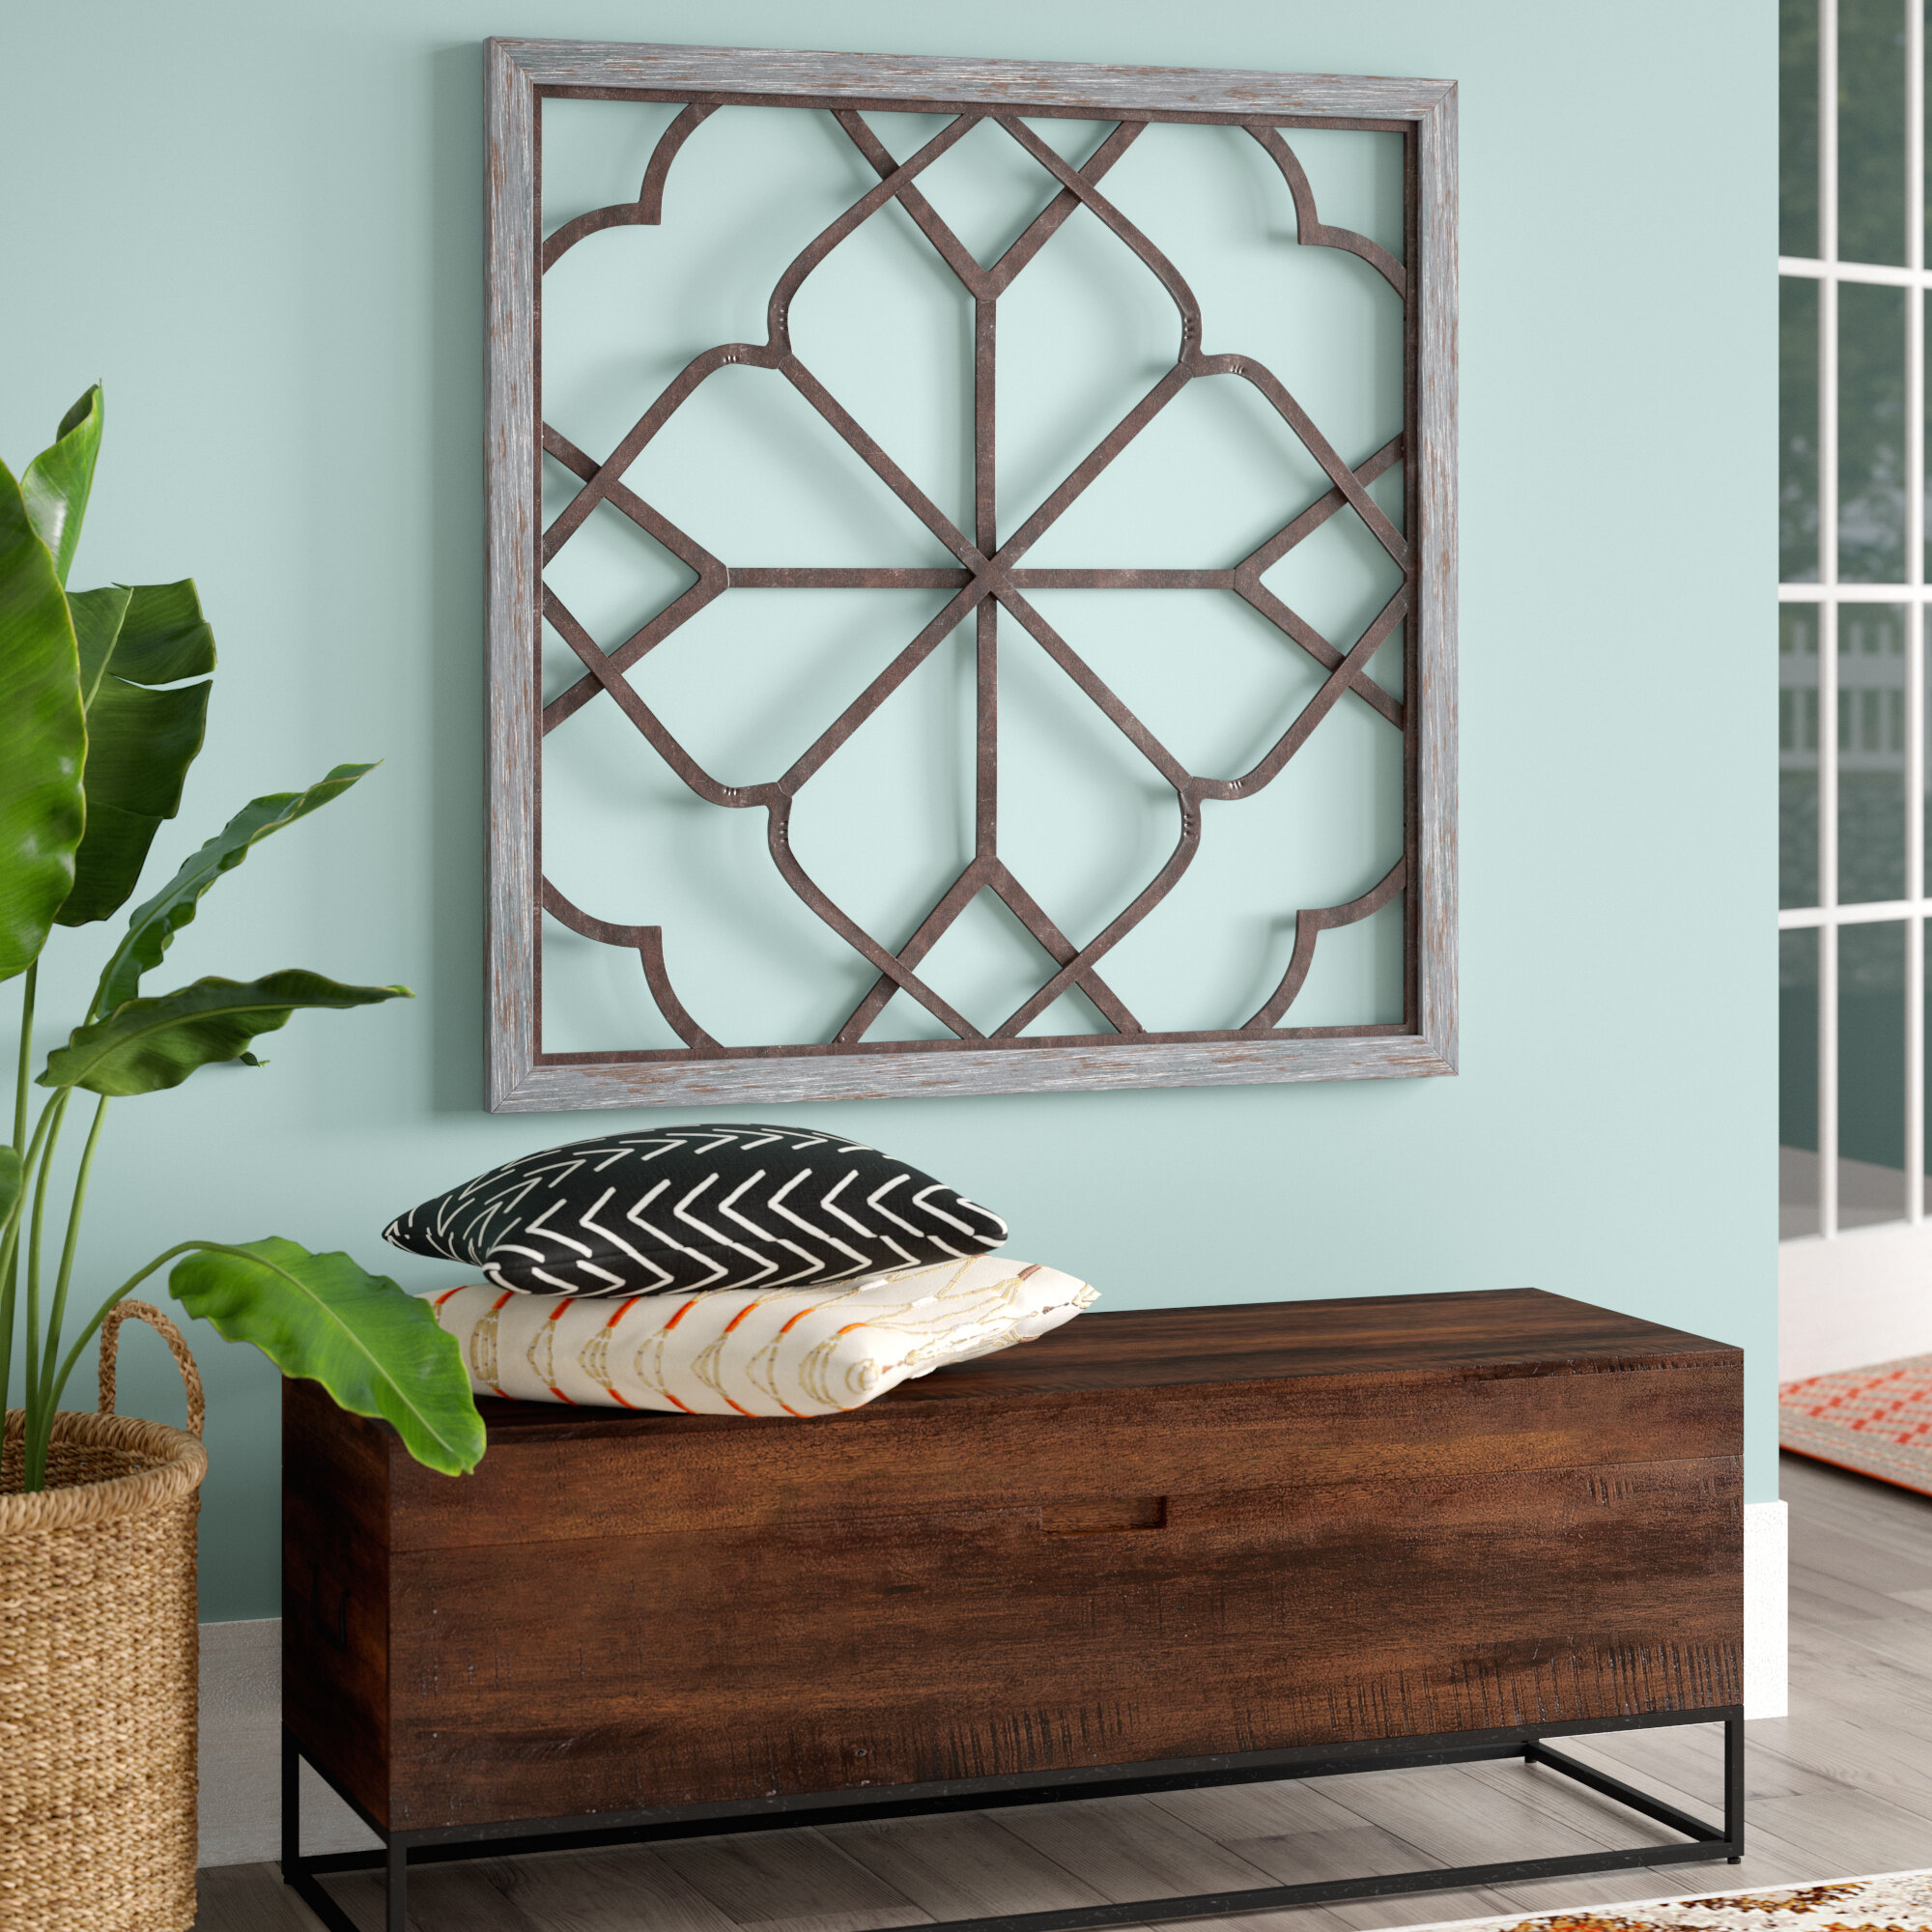 Wall Accents You'll Love In 2019 | Wayfair regarding 2 Piece Trigg Wall Decor Sets (Set Of 2) (Image 28 of 30)